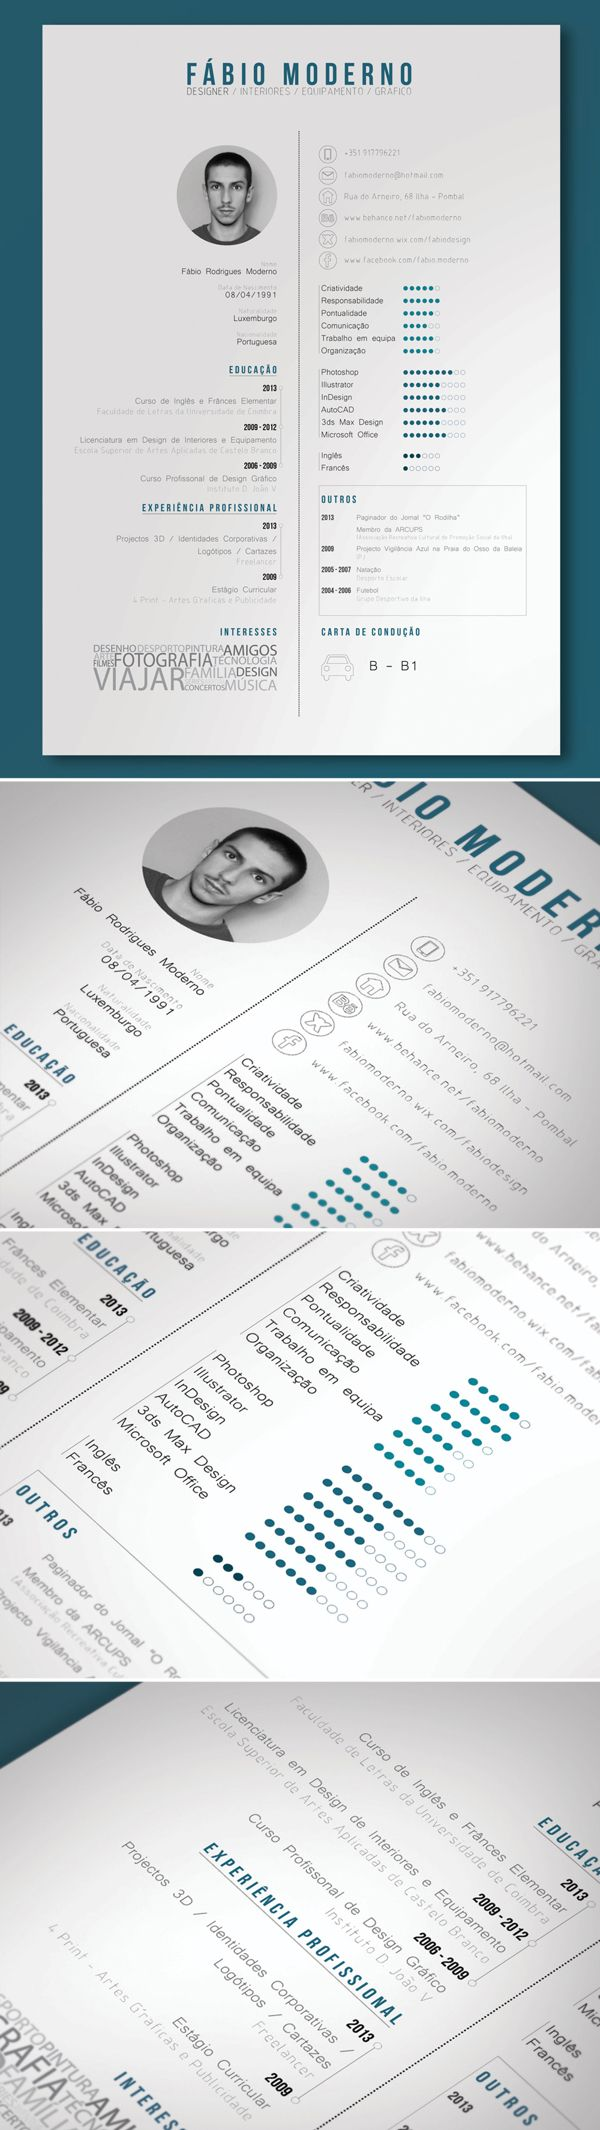 best ideas about creative cv design cv design if you are interesting in lighting lighting design and art art gallery design space design and you have your own blog or social media welcome to join us